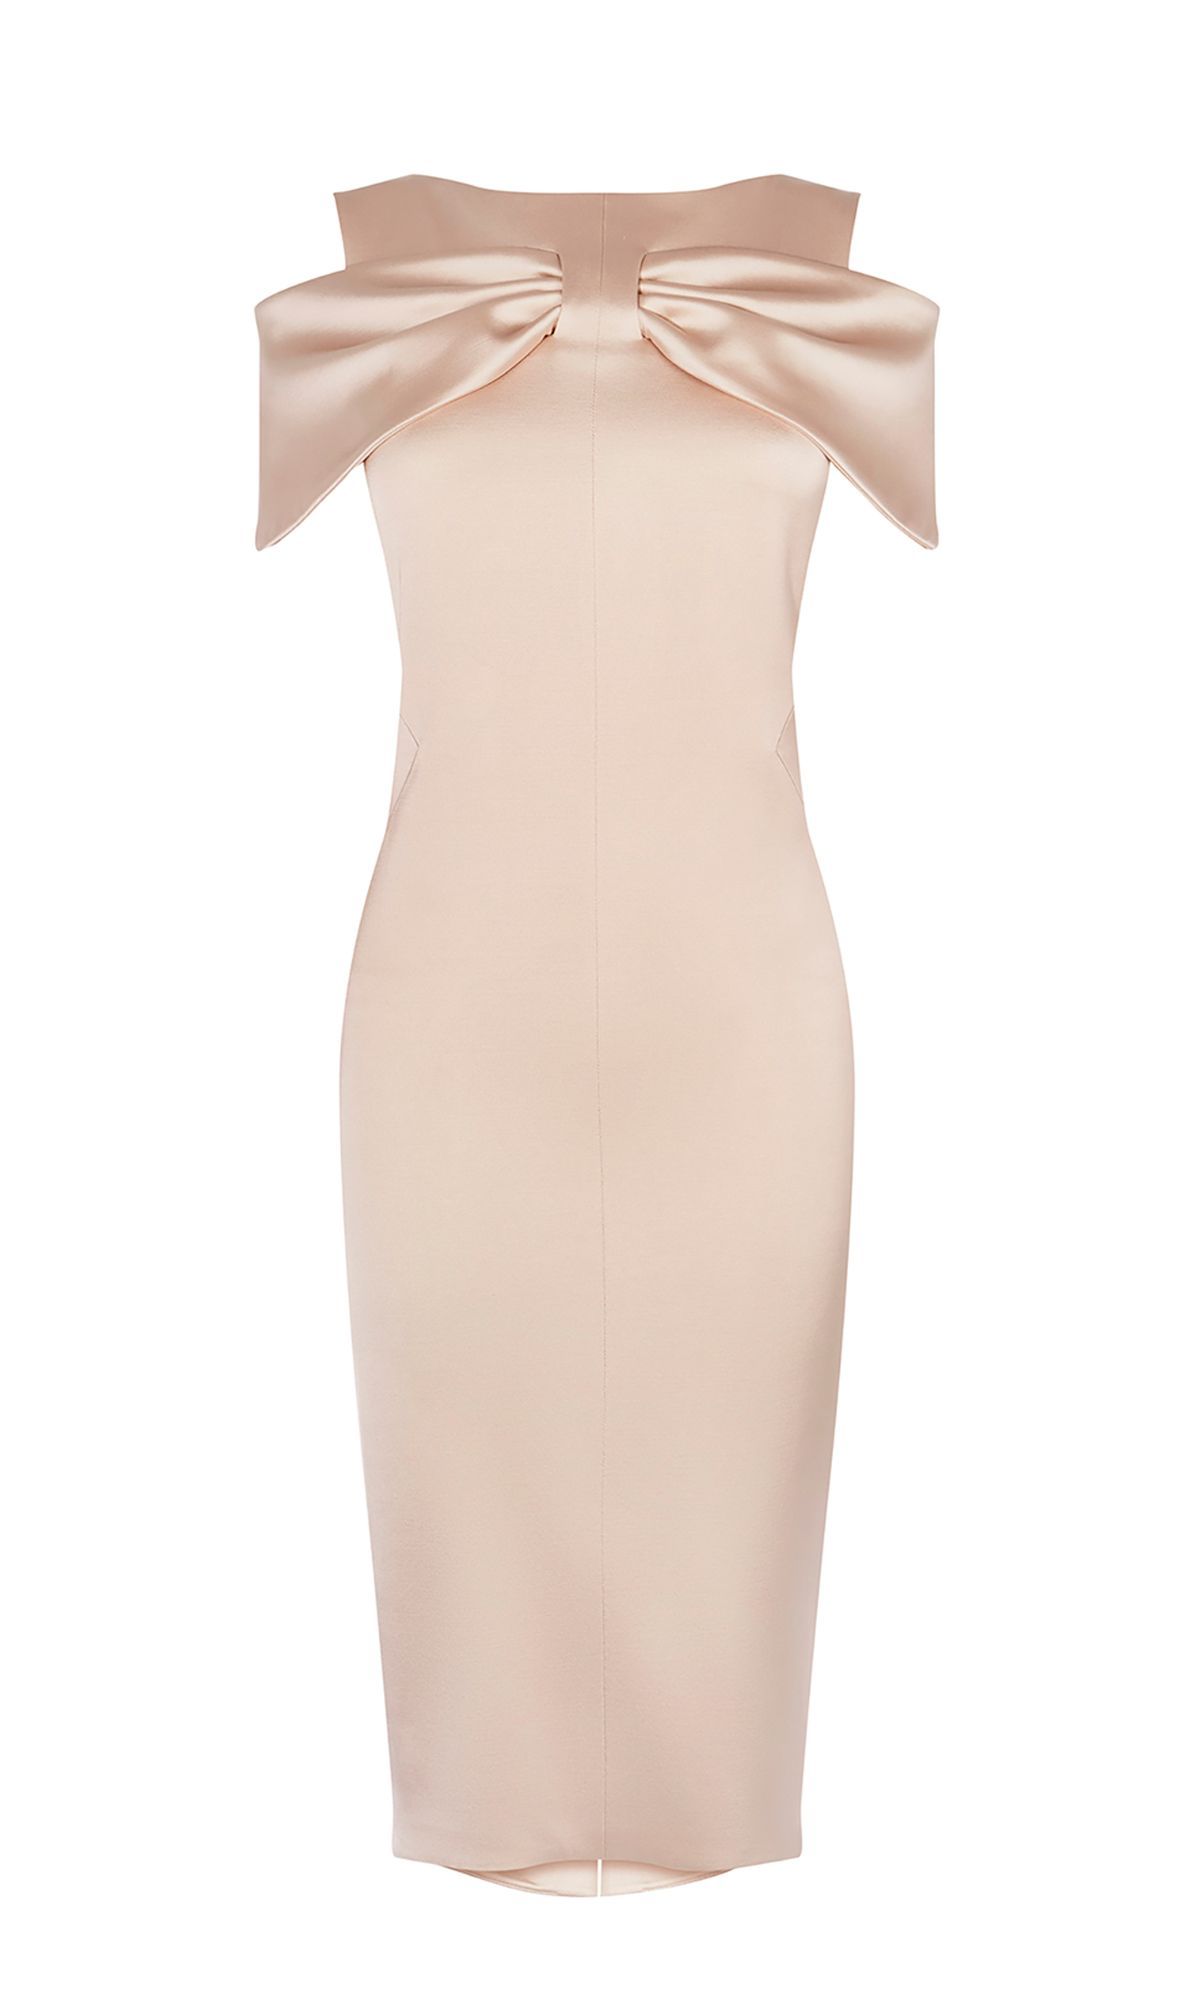 Karen Millen Satin Bow Pencil Dress, Champagne